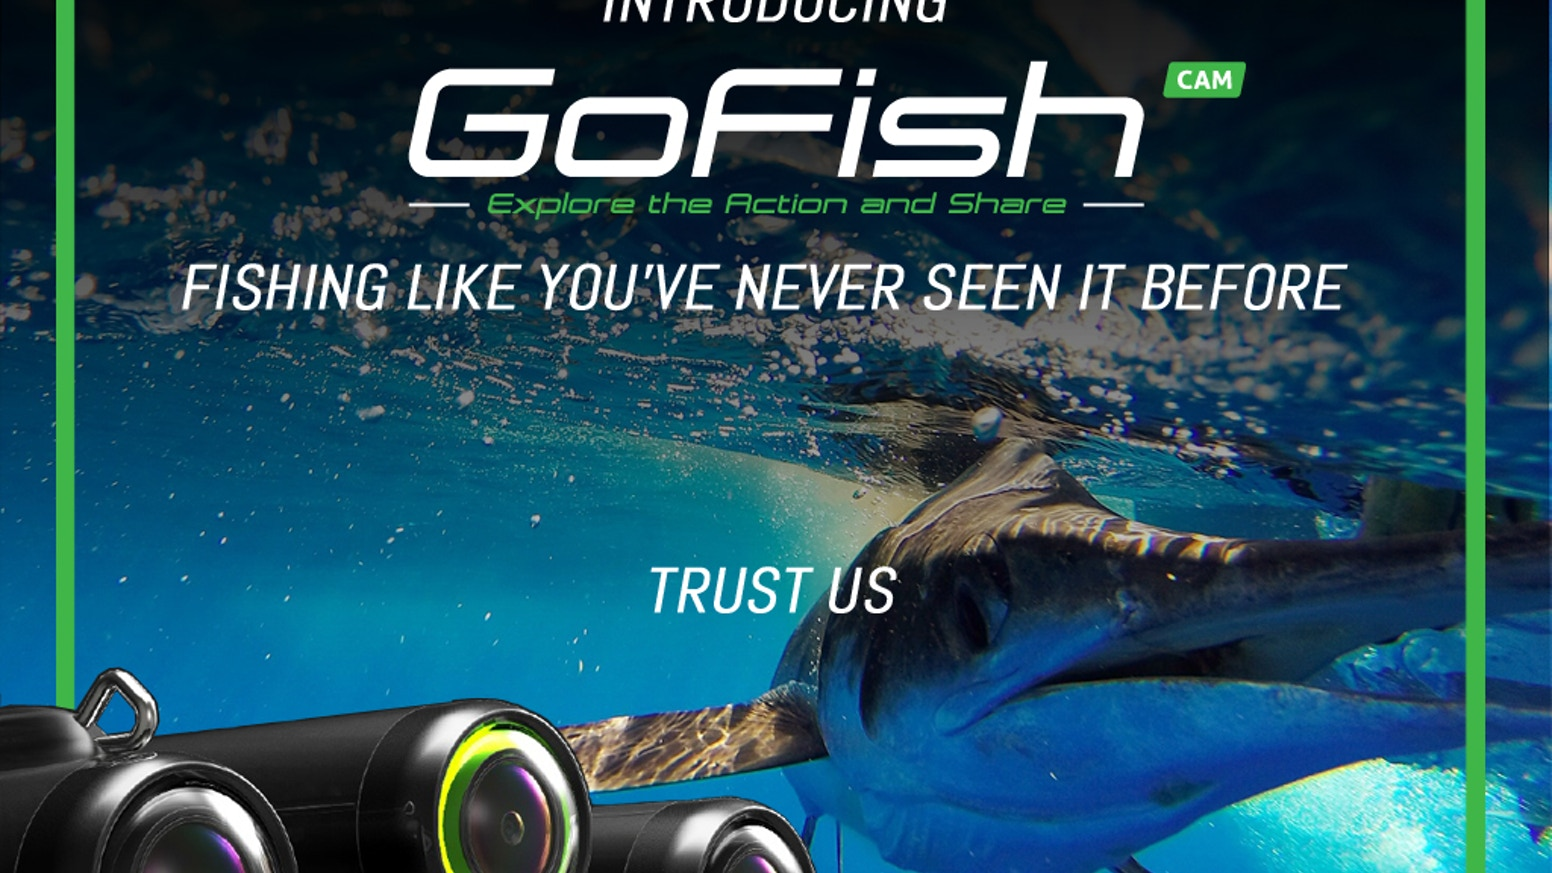 GOFISH CAM: The Extreme Action-Adventure Camera for Fishing